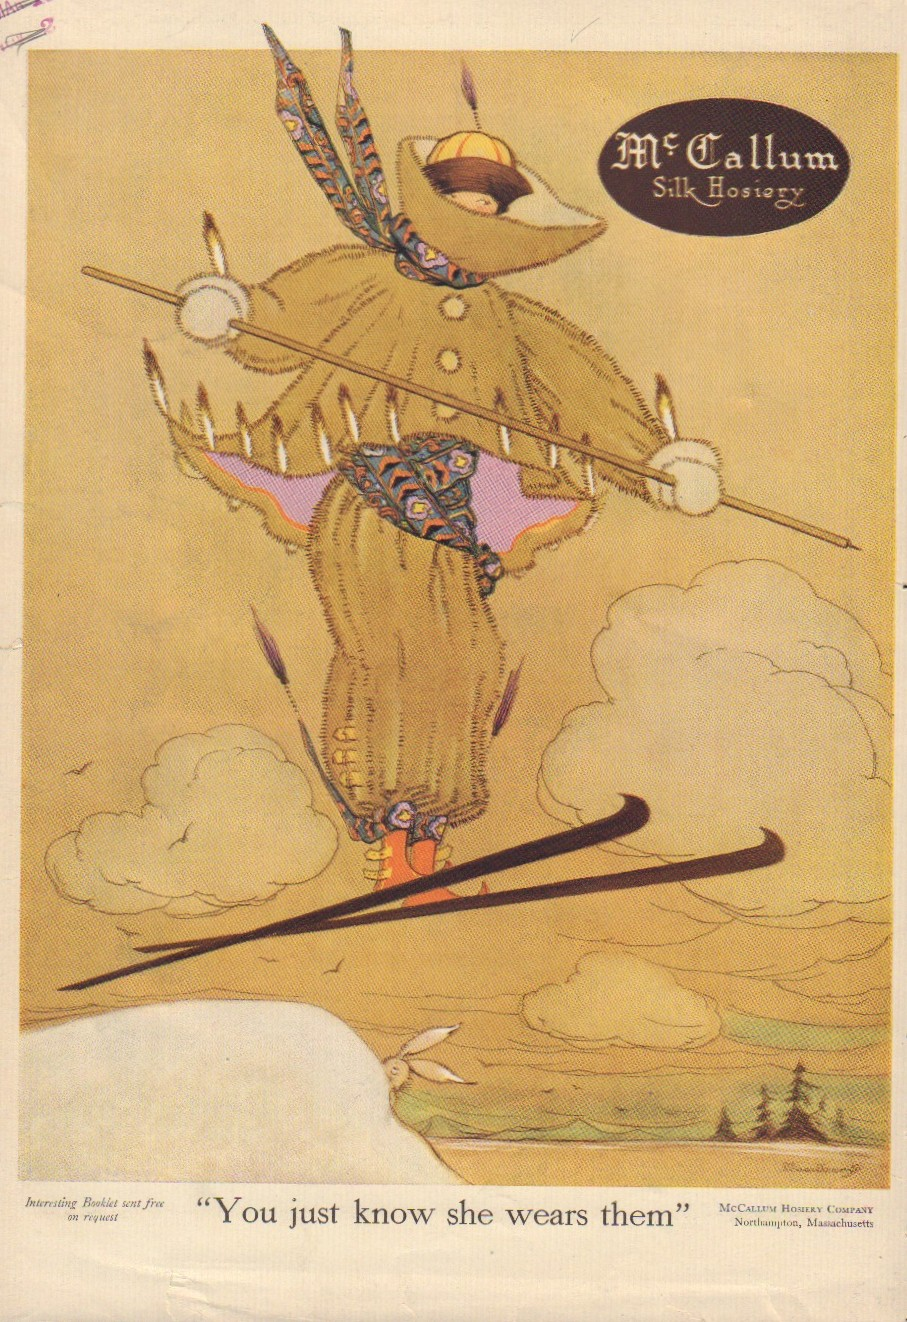 Image for Harper's Bazar (Harper's Bazaar). November, 1917 - Cover Only